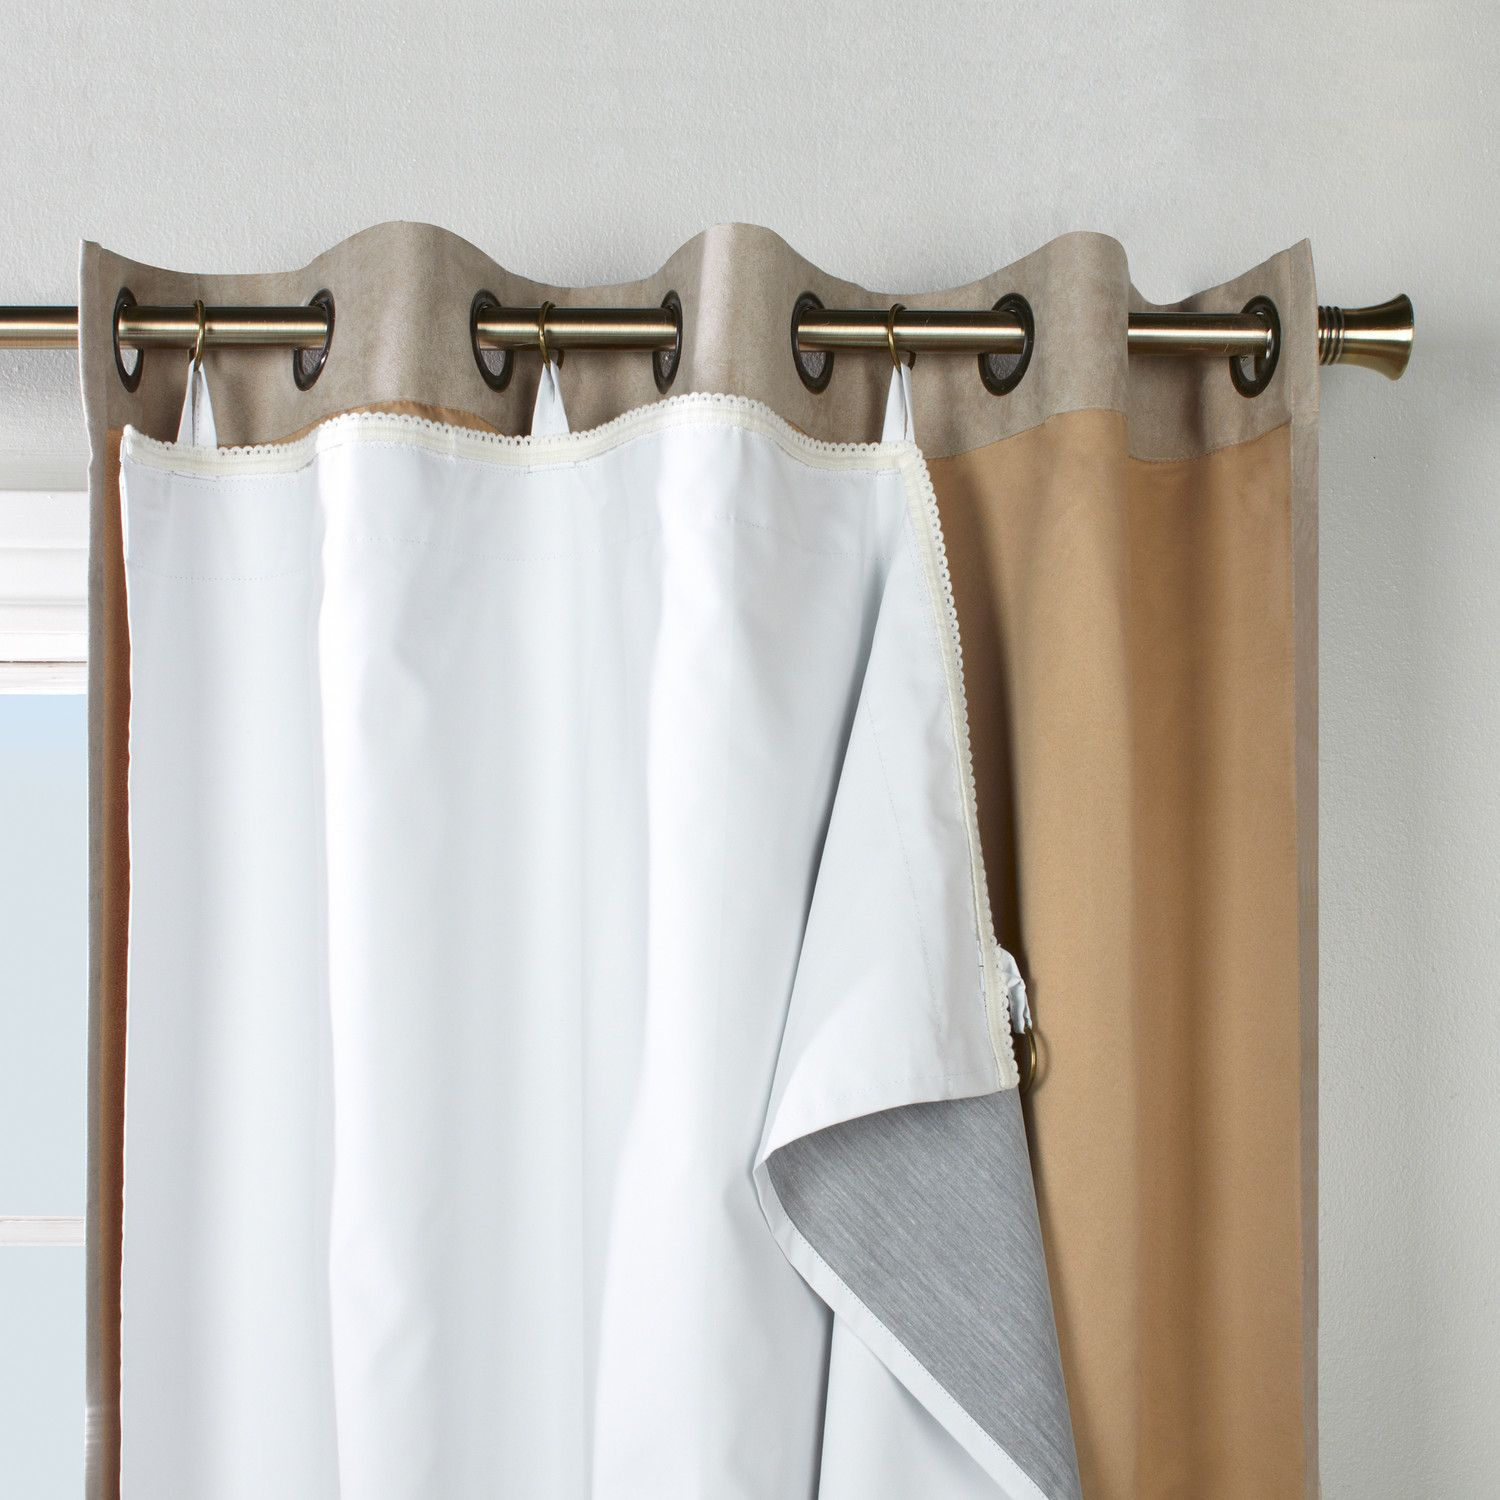 How To Arrange Blackout Liner With Curtain Blackout Liner In White